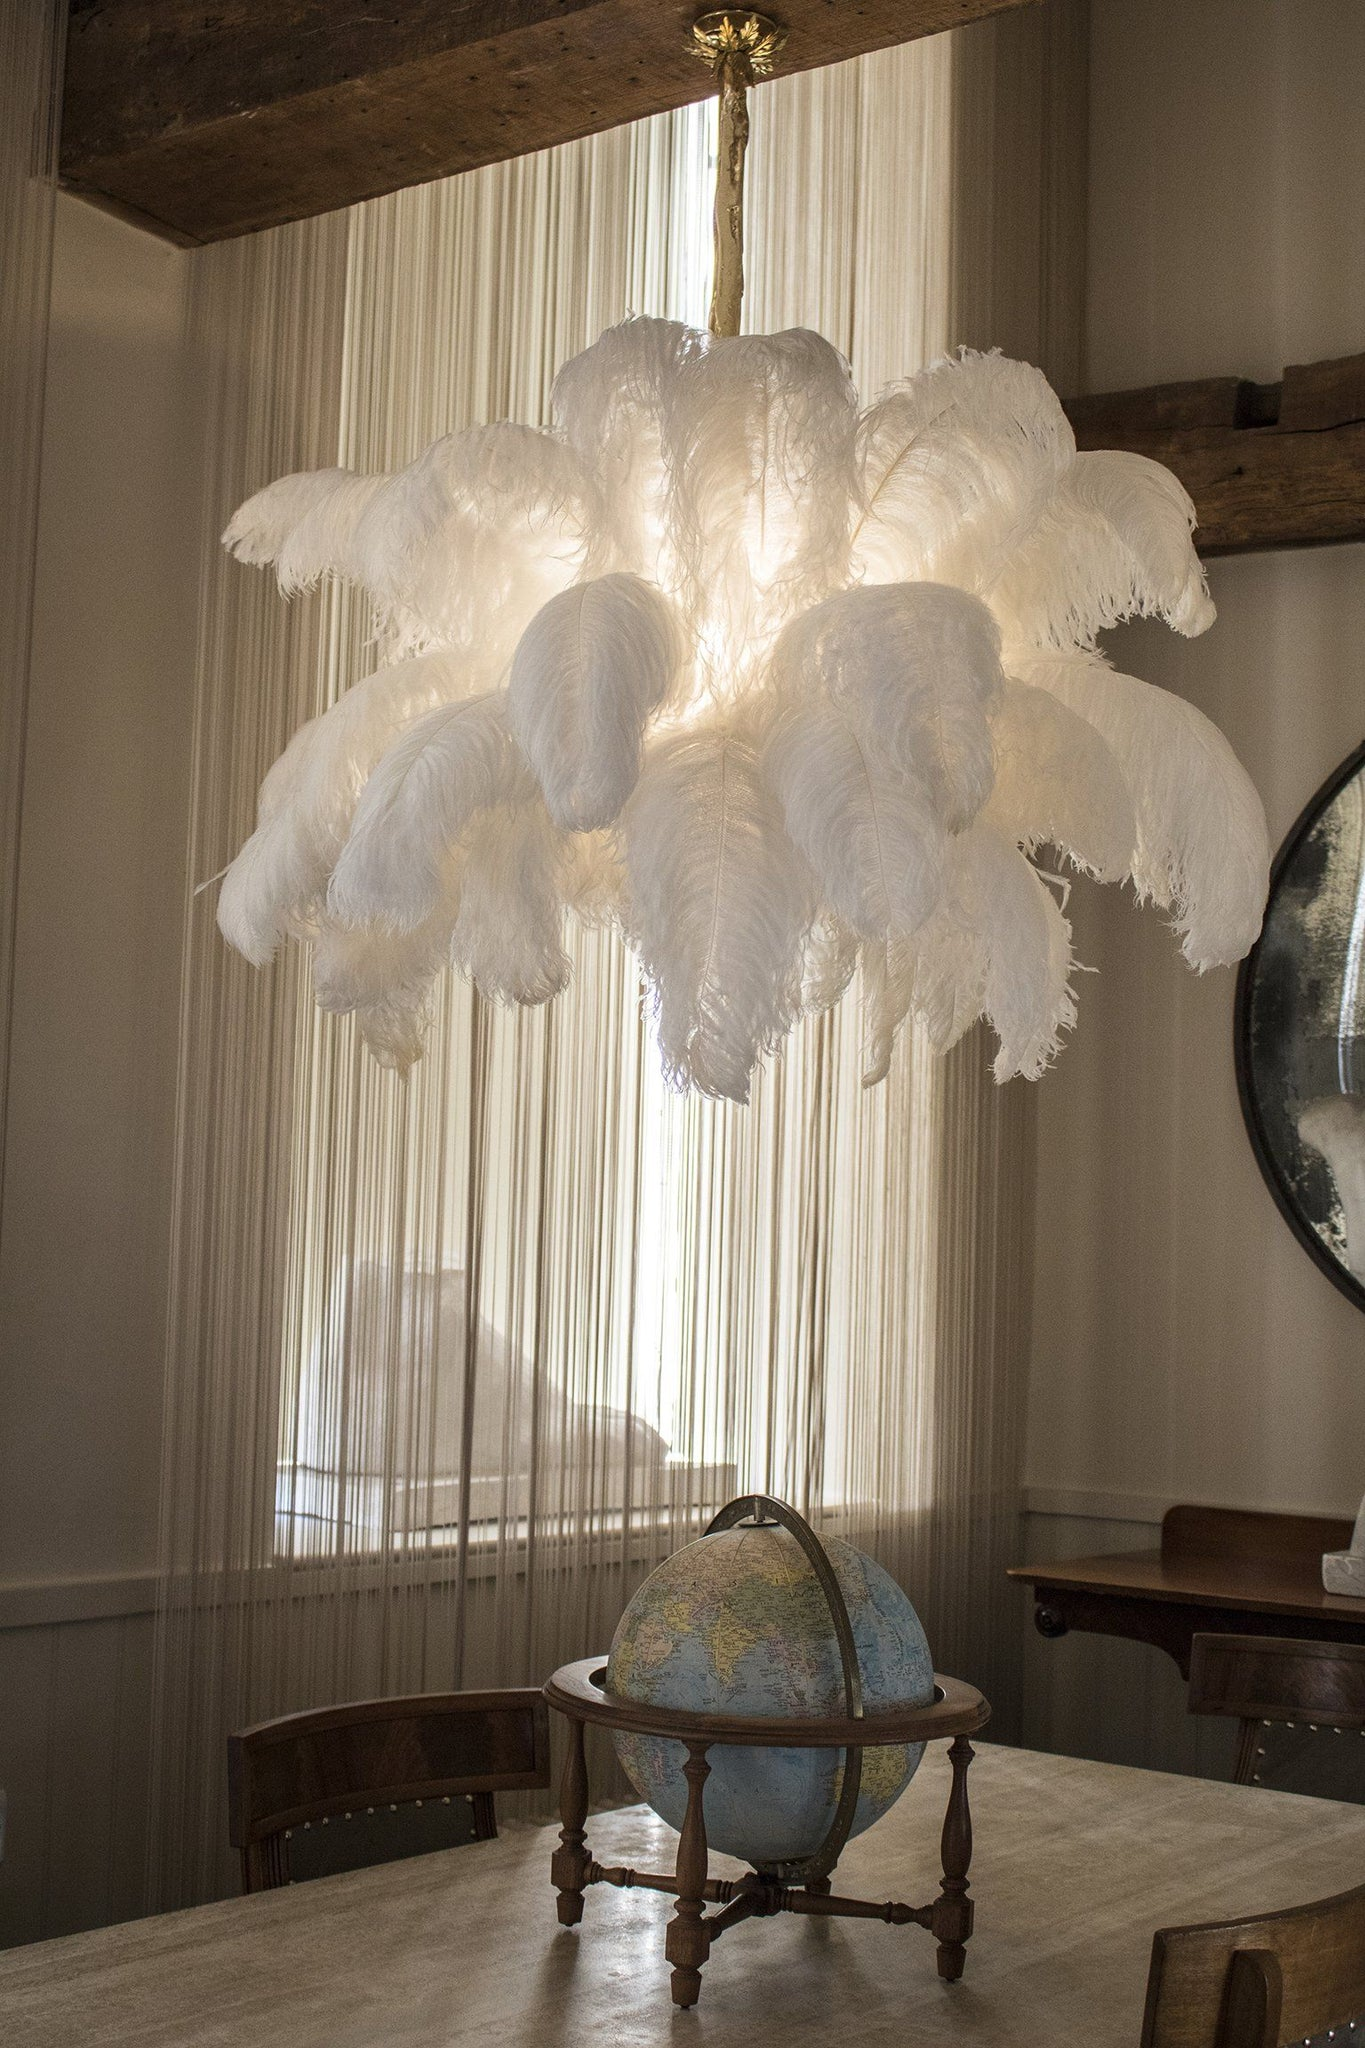 The Feather Chandelier